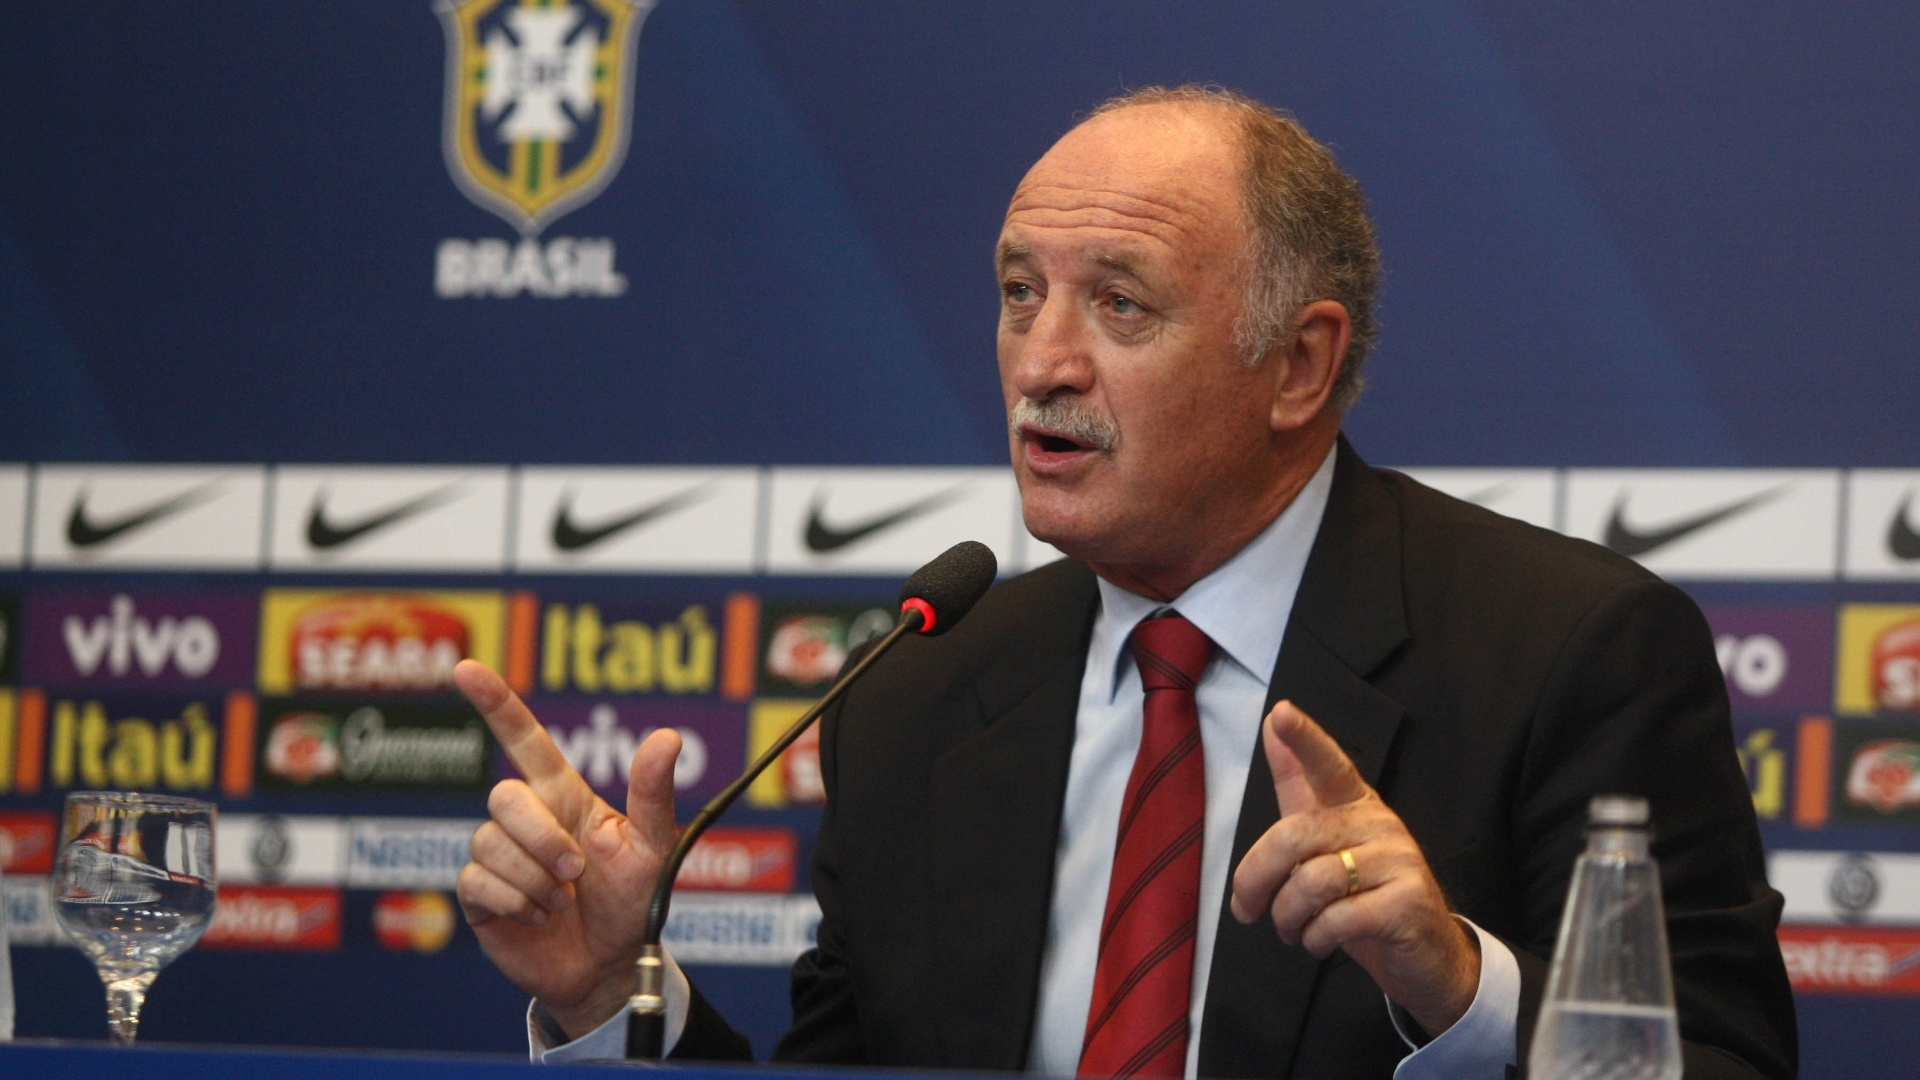 05.fev.2013 - Luiz Felipe Scolari concede entrevista coletiva aps o anncio da convocao da seleo brasileira